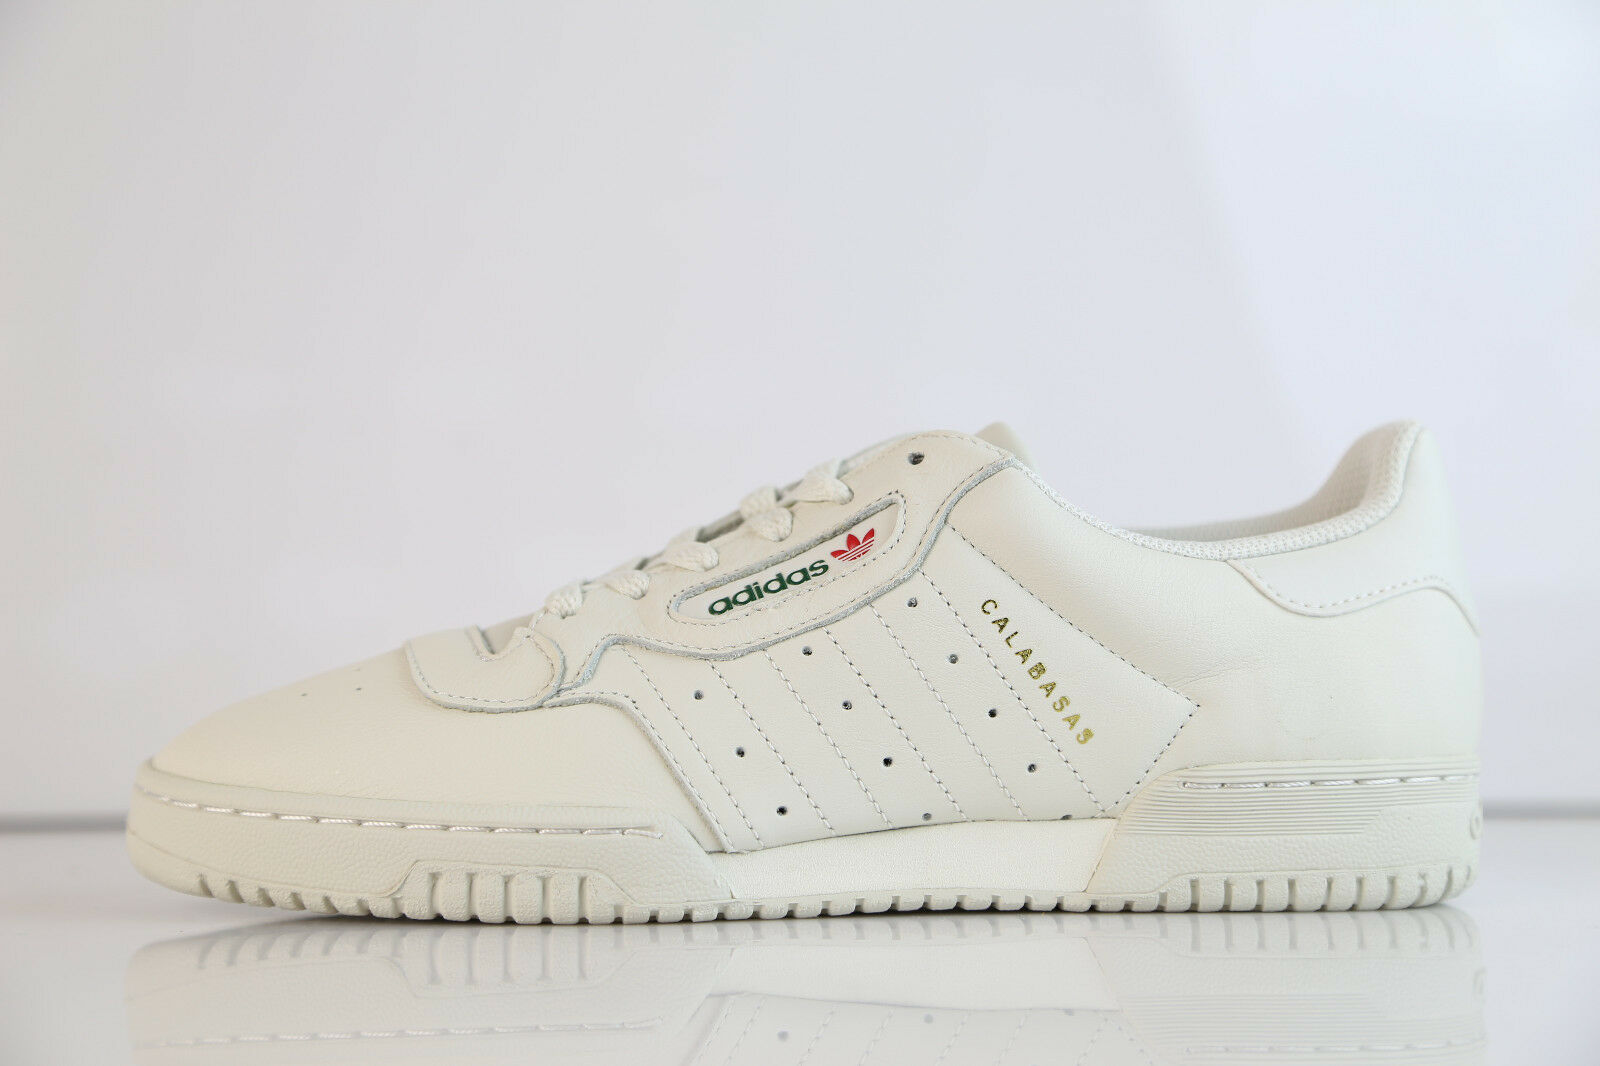 Adidas X Yeezy Powerphase Calabasas White Cream CQ1693 5-14 boost 1 350 rf